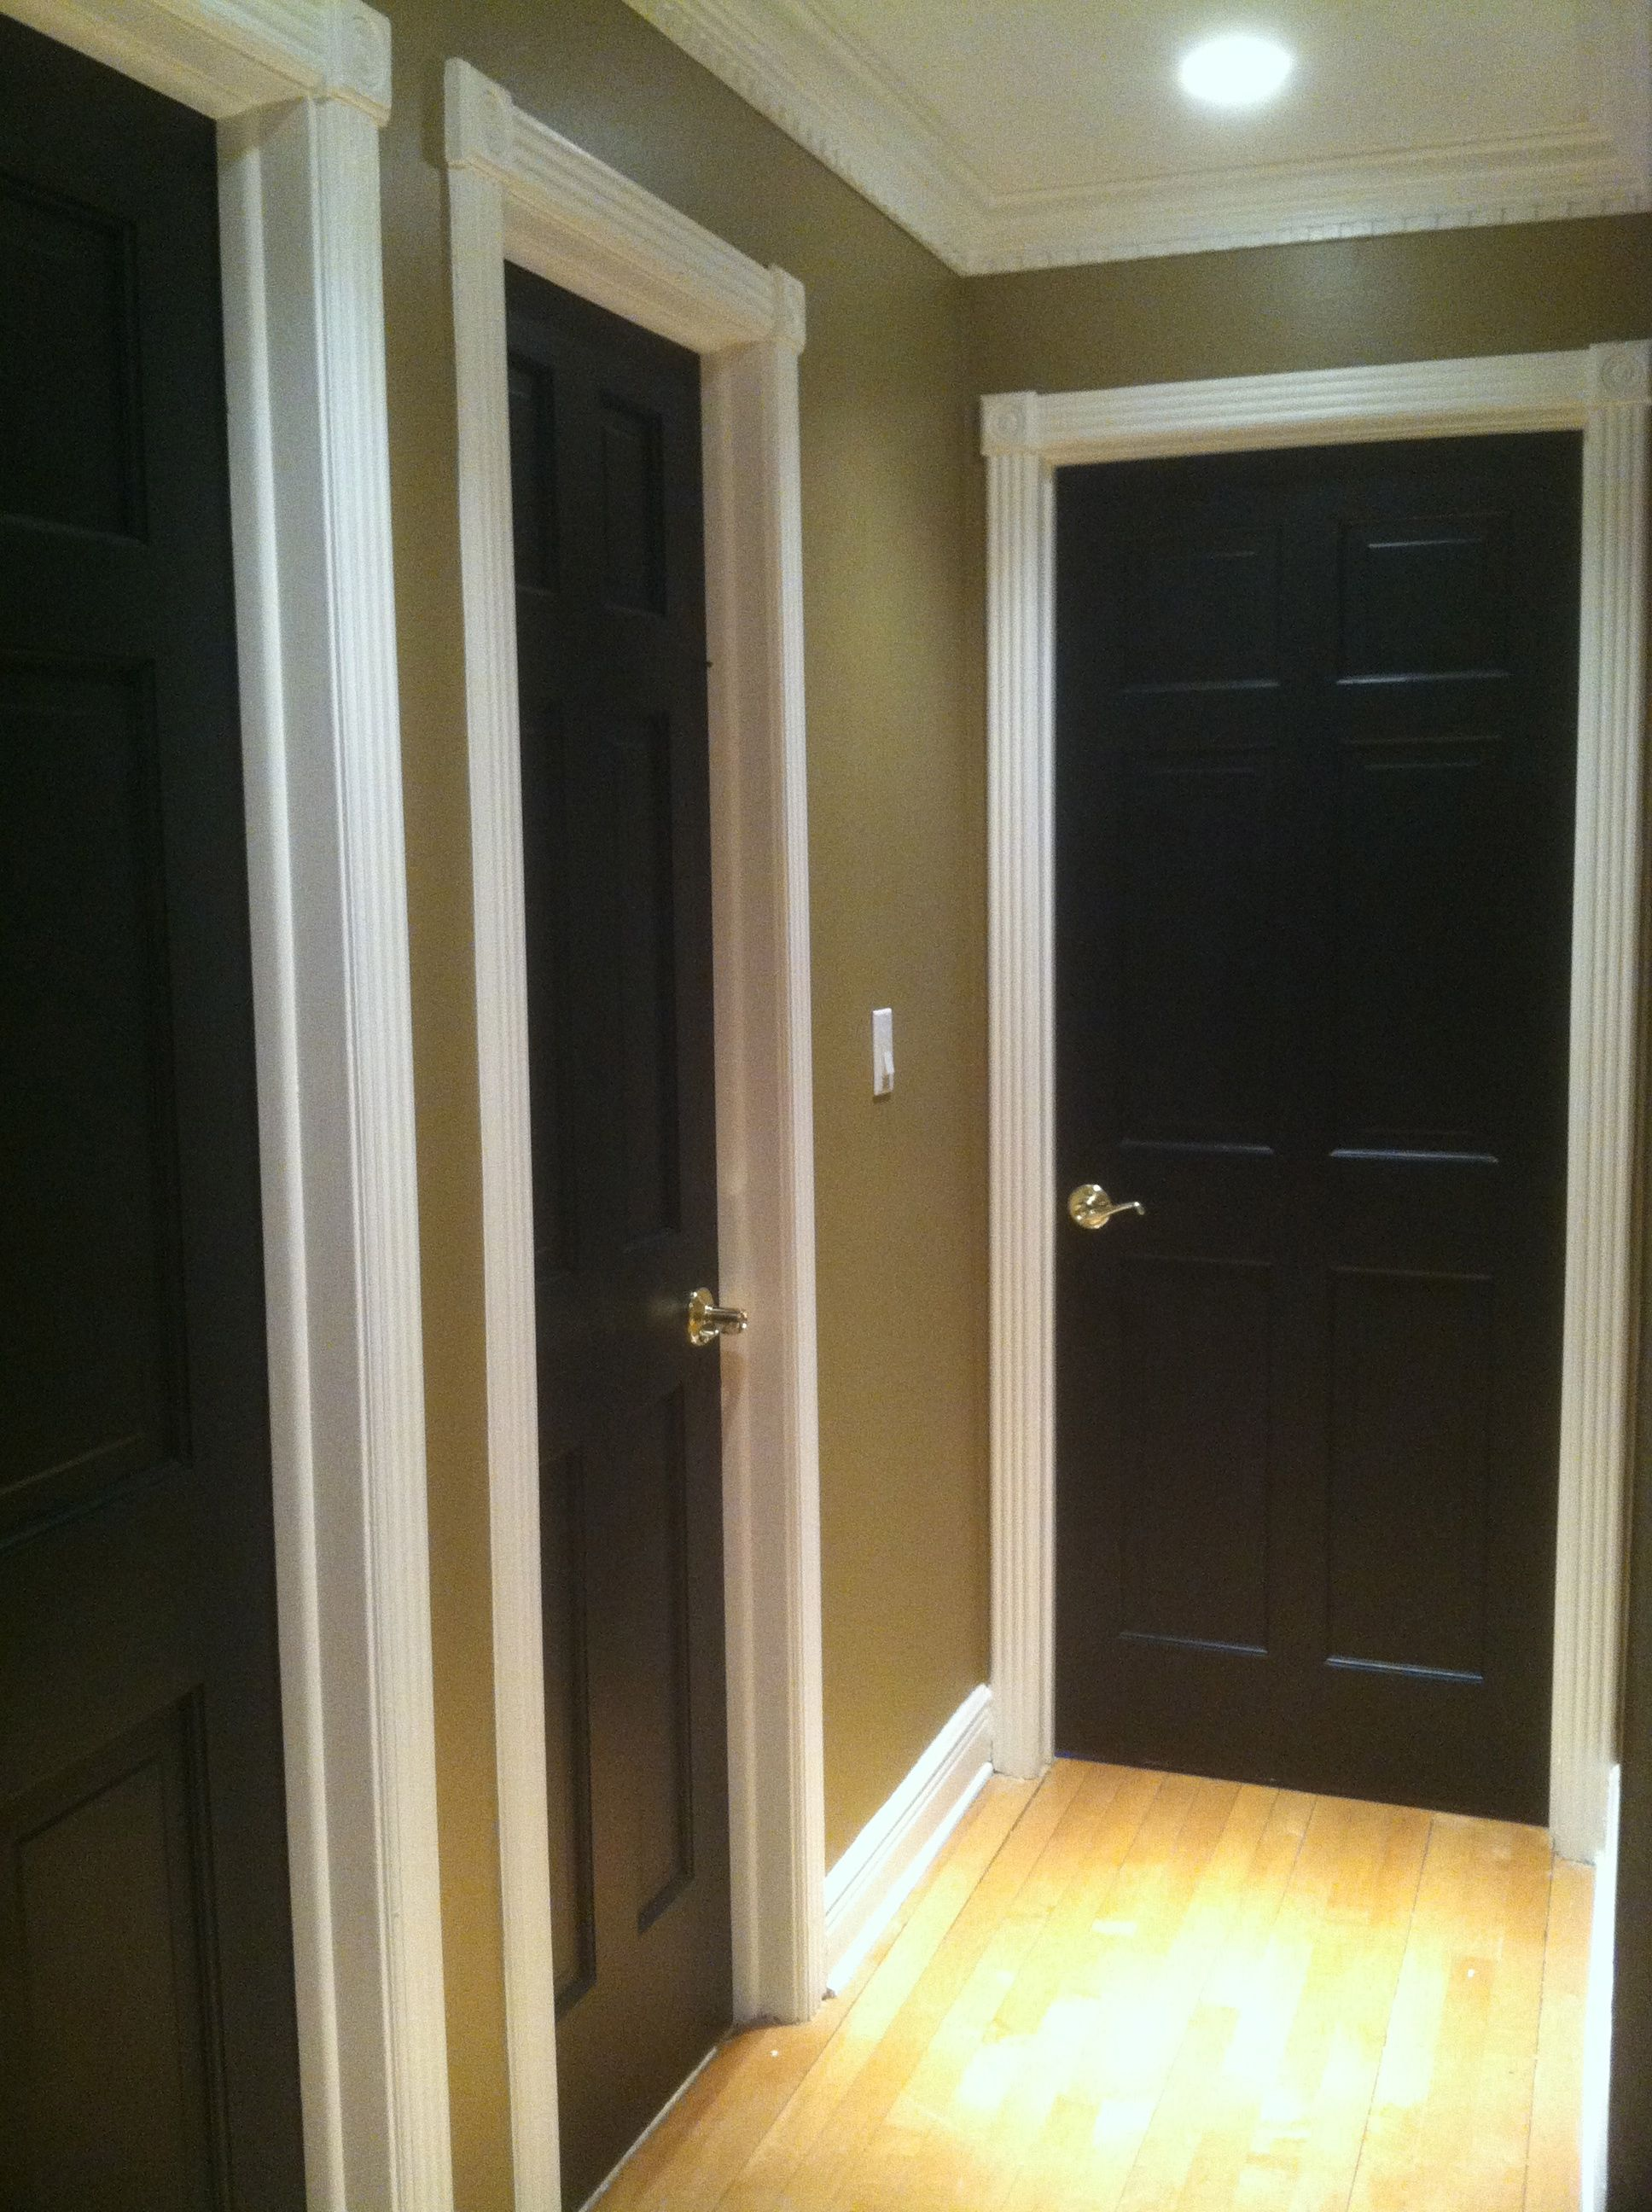 Black doors with white trim - Black Doors With White Trim Love This Idea Going To Try In My